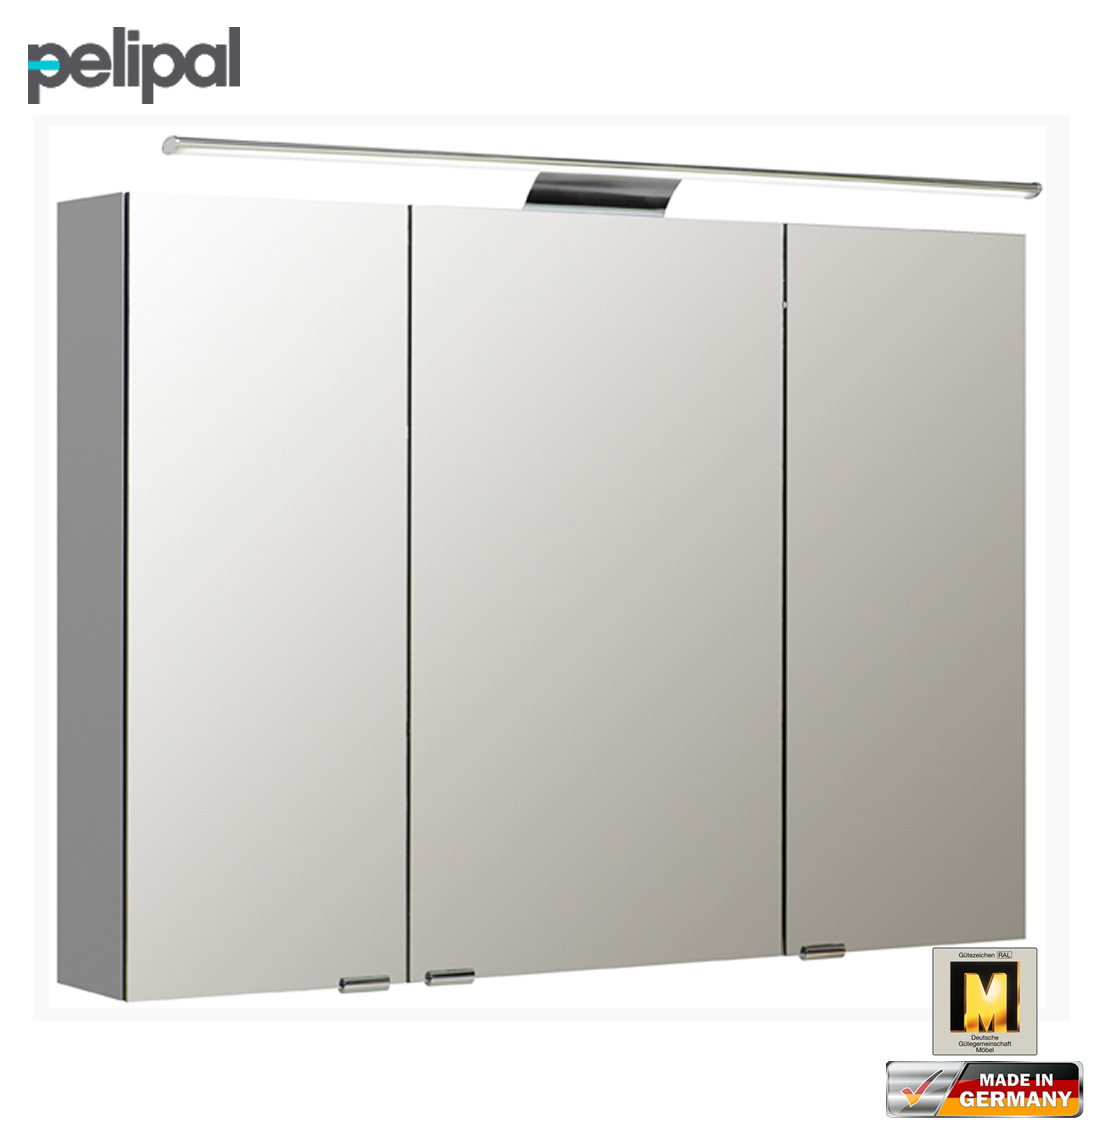 pelipal neutraler spiegelschrank 100 cm mit led. Black Bedroom Furniture Sets. Home Design Ideas